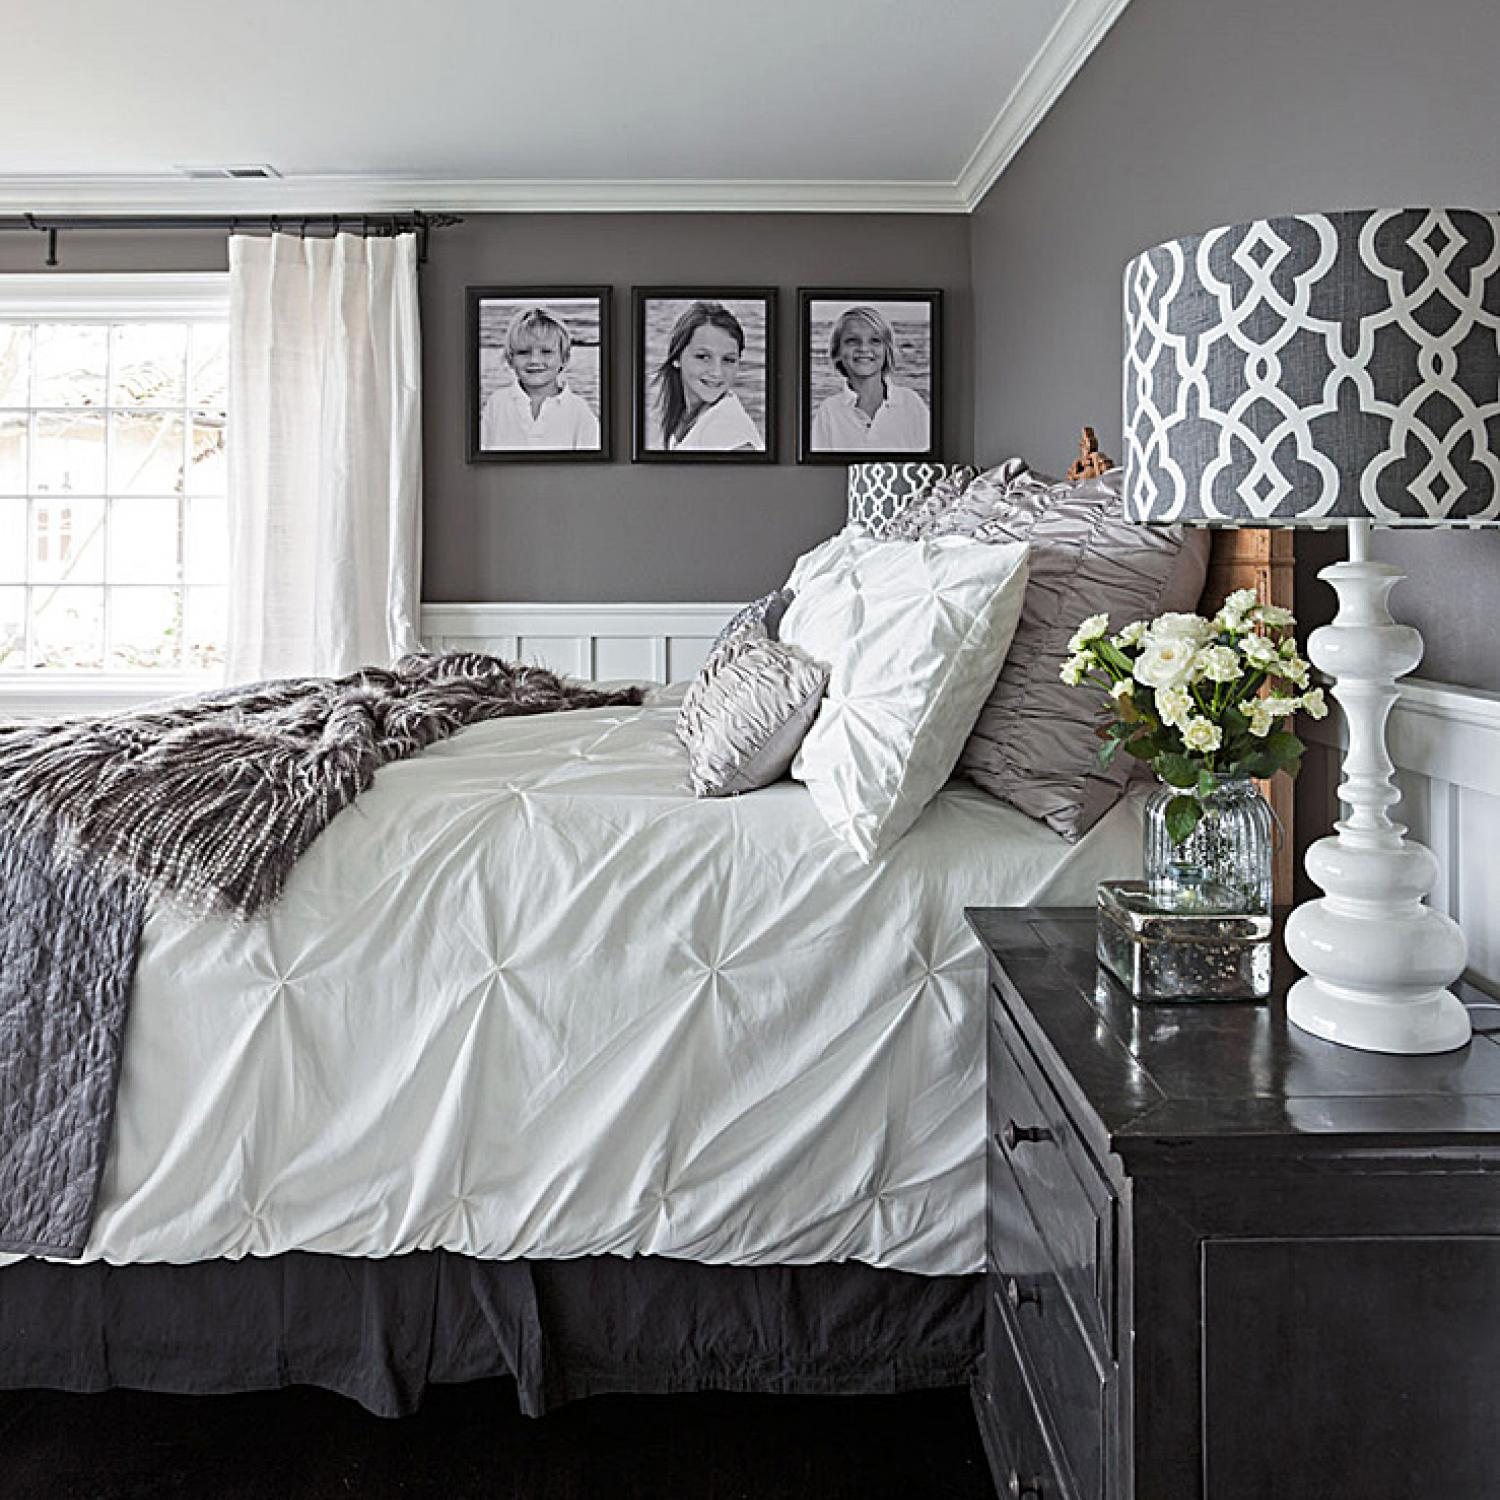 Bedroom Ideas Pinterest: Gorgeous Gray-and-White Bedrooms